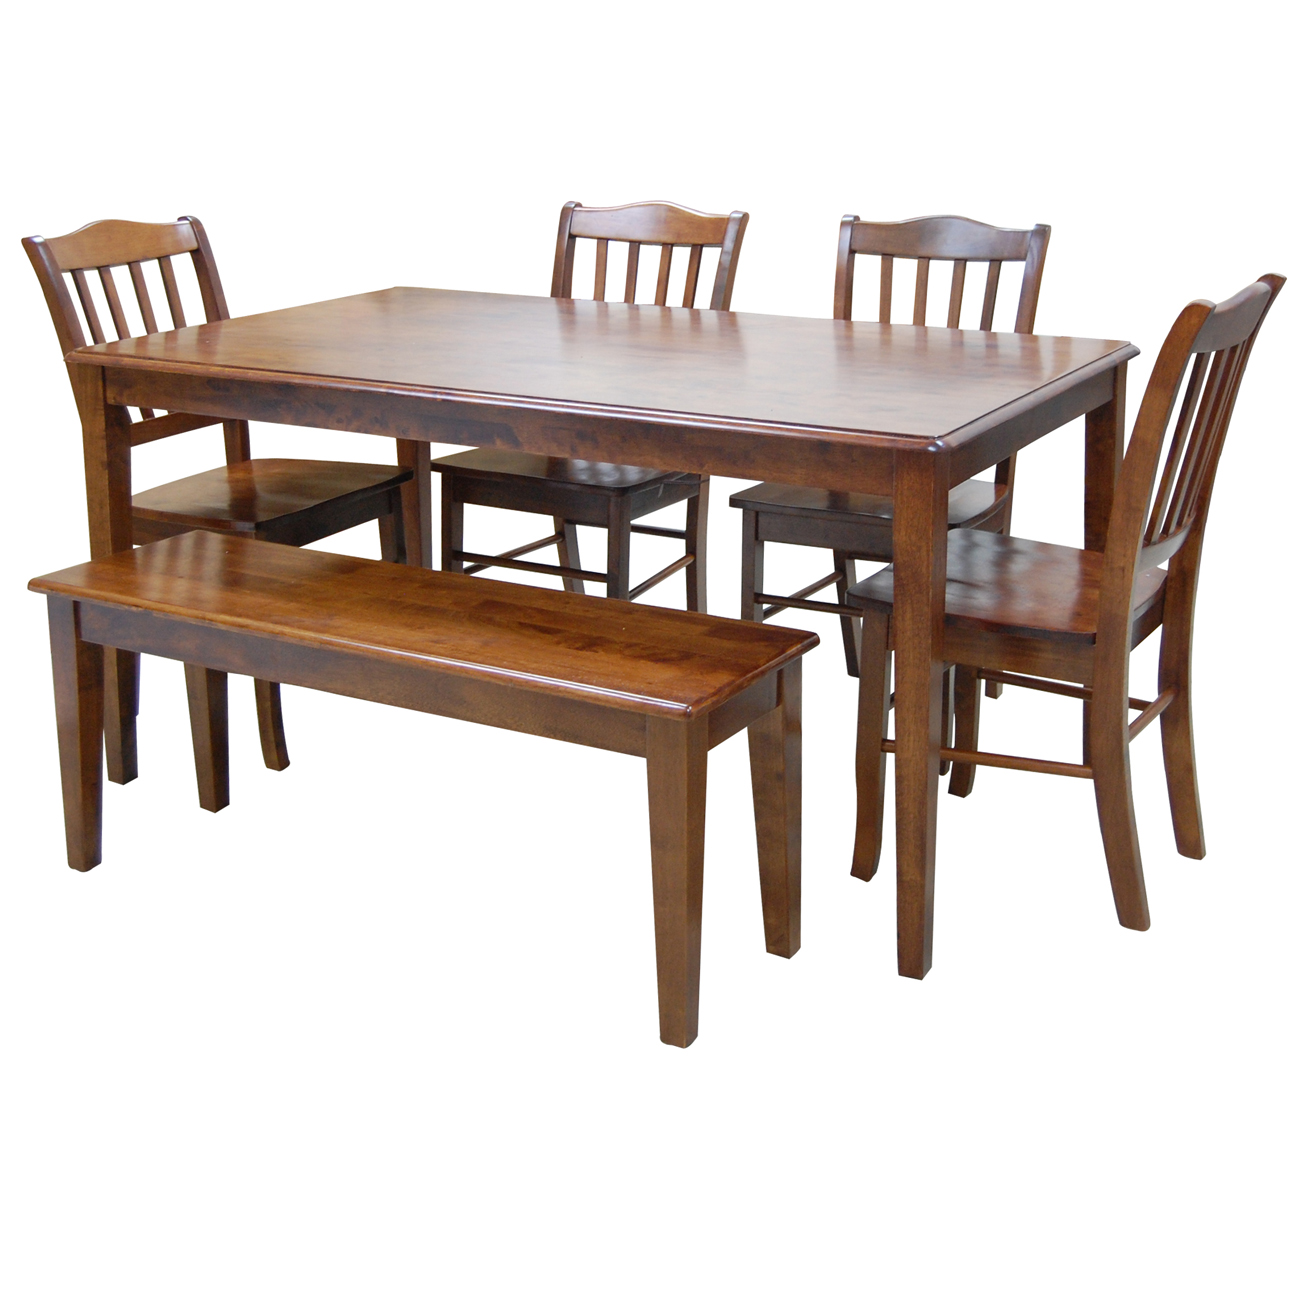 Boraam Shaker Dining Chairs, Walnut, Set of 2 - Walmart.com